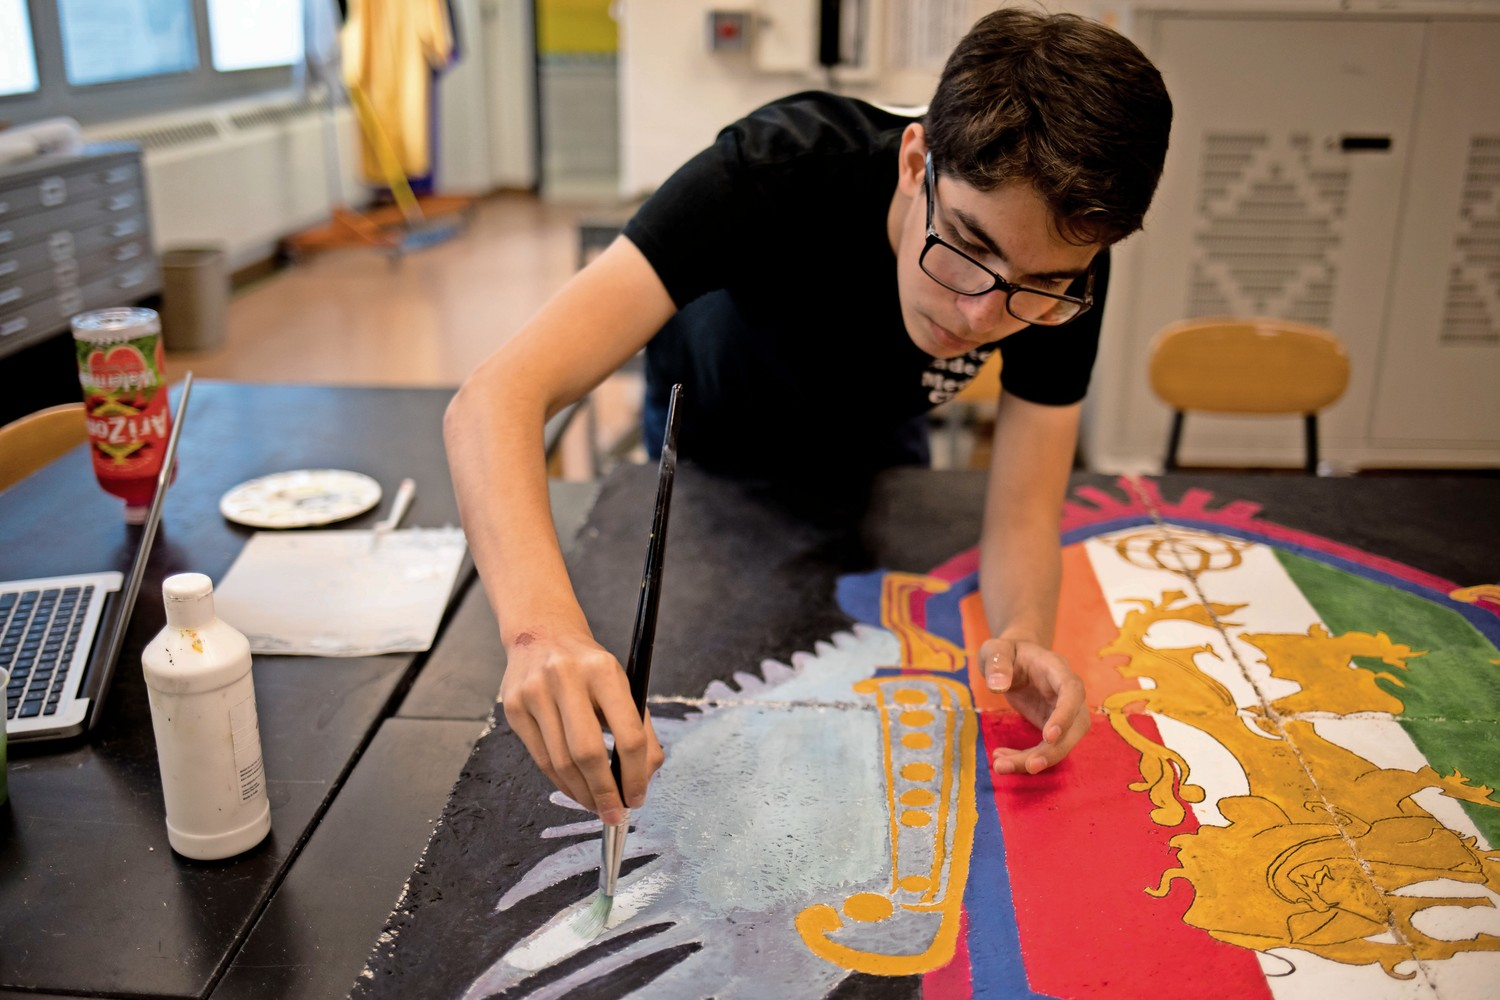 Saige Welsh paints a ceiling tile in the art classroom at IN-Tech Academy. Welsh, who will be a junior next year, is one of many students who will dearly miss Bruno Santini, a beloved art teacher at the school who recently retired.